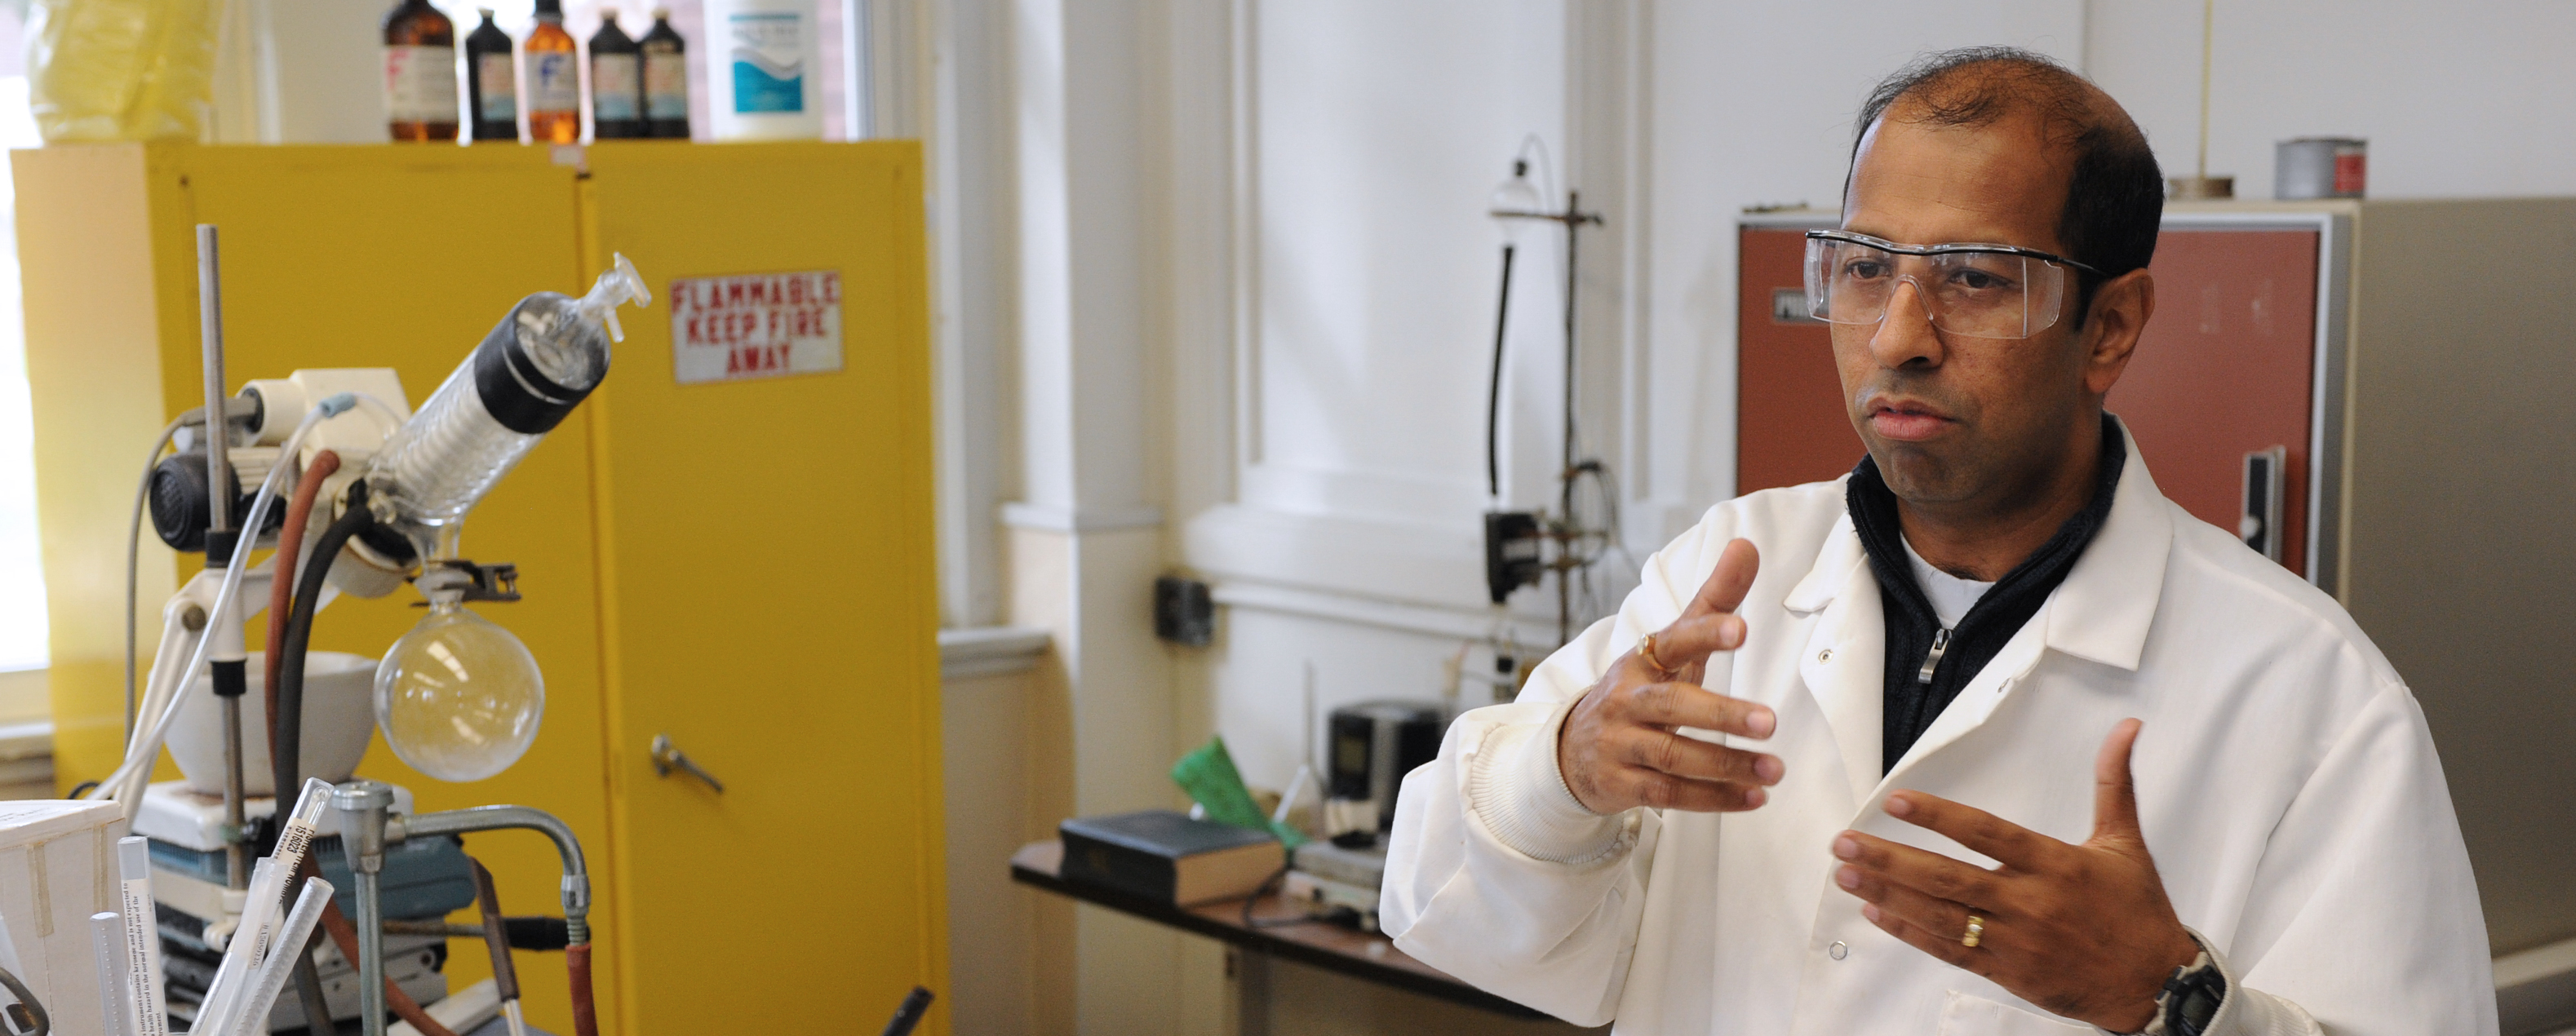 Professor Dutta wearing goggles and a white lab coat, standing around lab equipment and gesturing with his hands as he speaks.